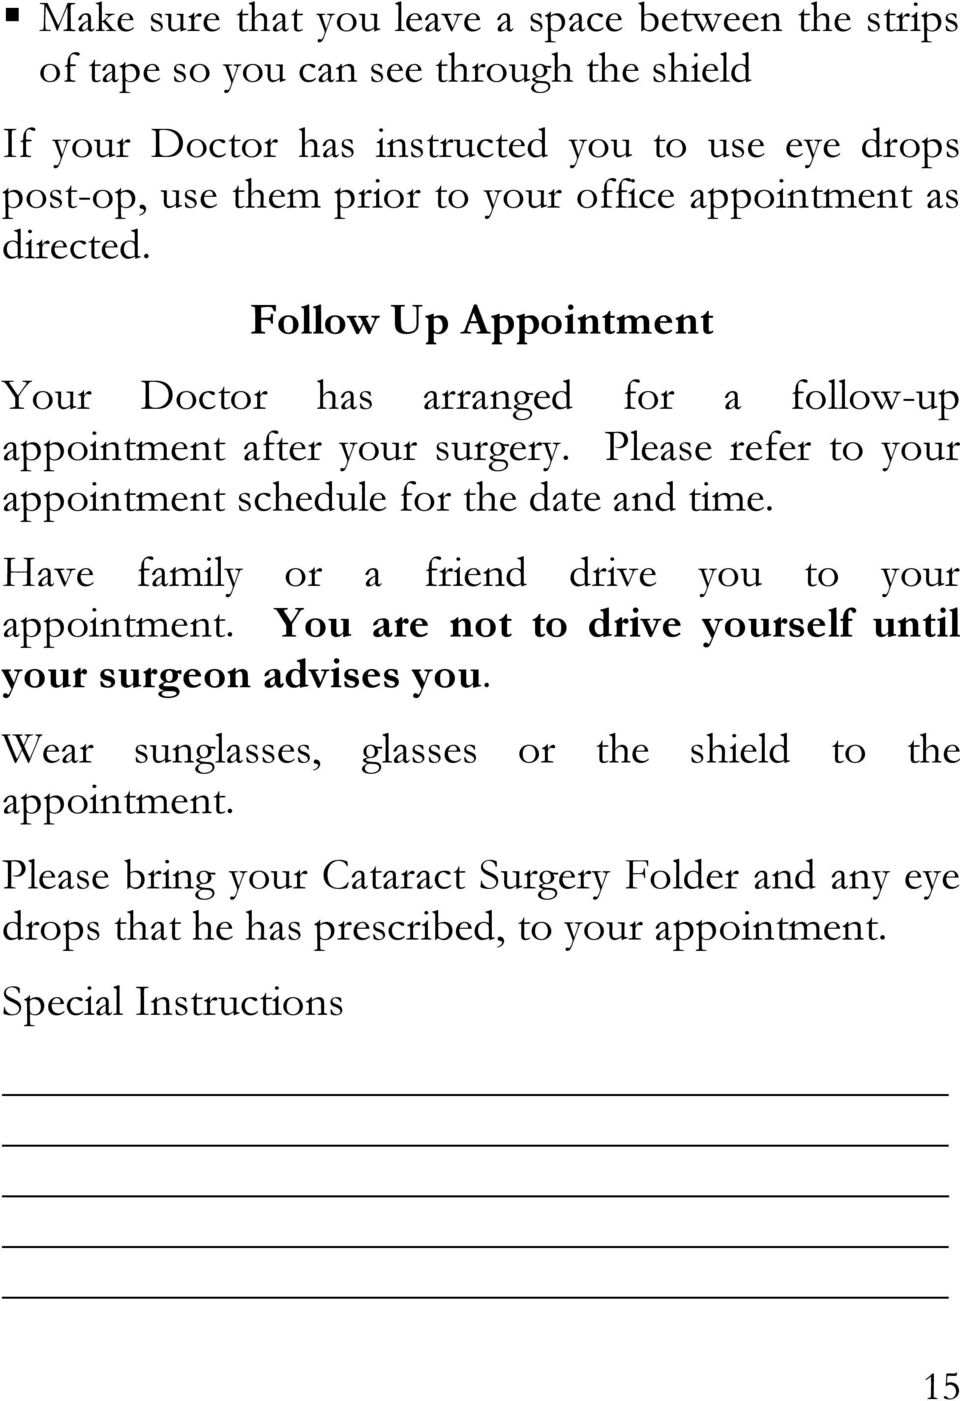 Please refer to your appointment schedule for the date and time. Have family or a friend drive you to your appointment.